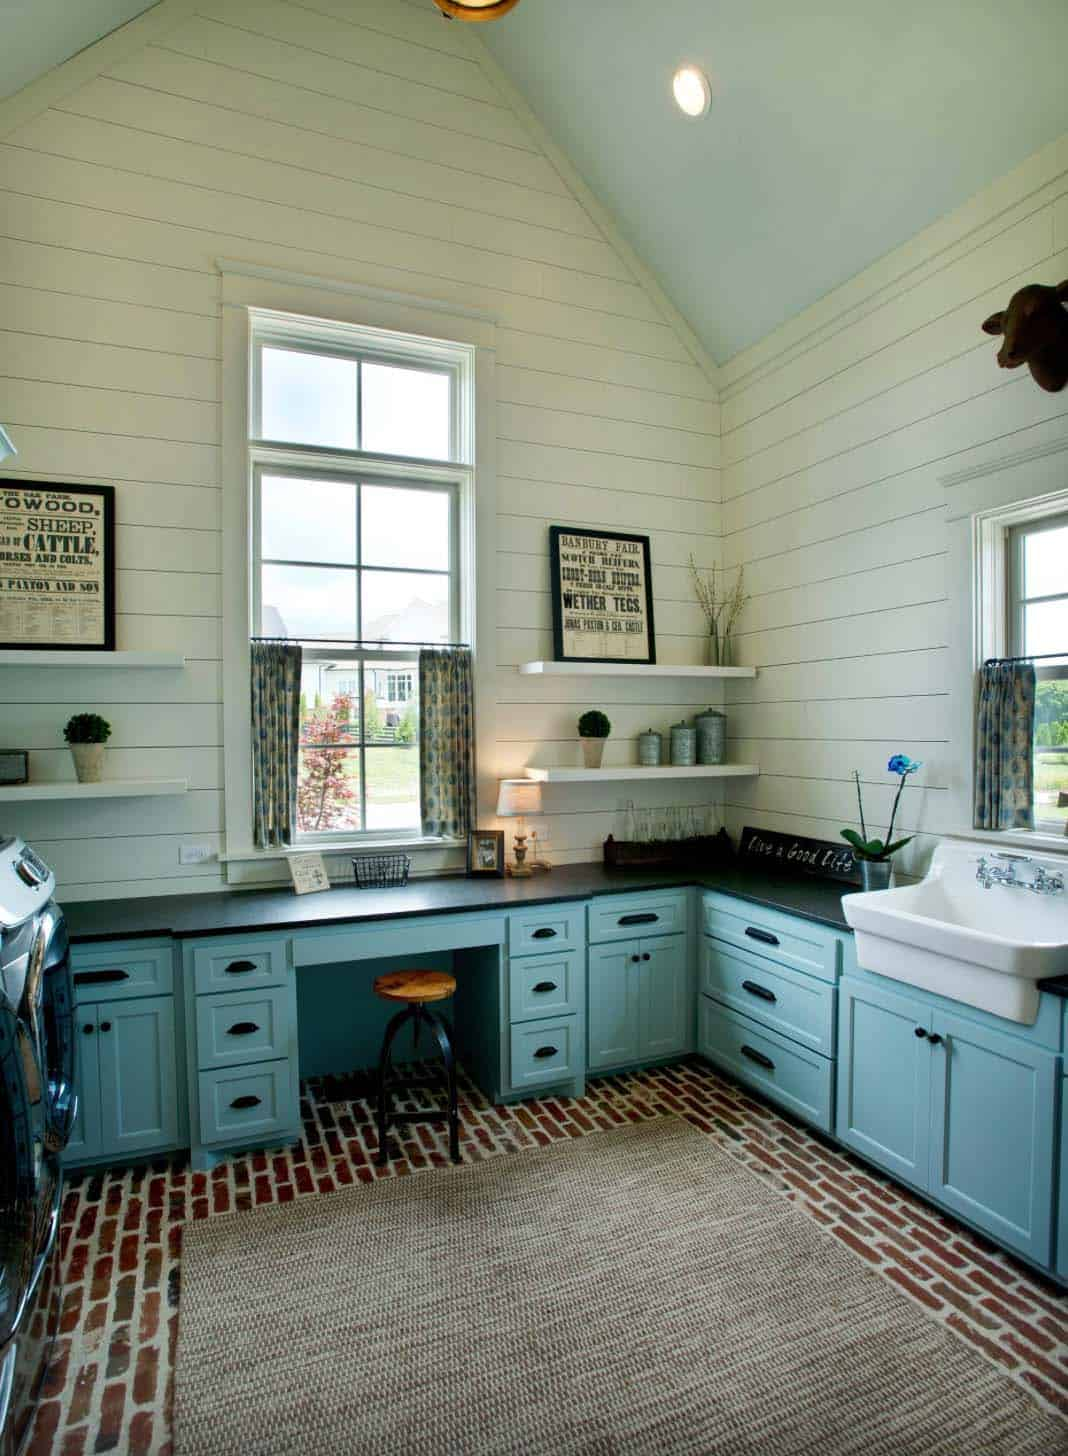 Farmhouse Laundry Room Floor 30 43 Unbelievably Inspiring Farmhouse Style Laundry Room Ideas